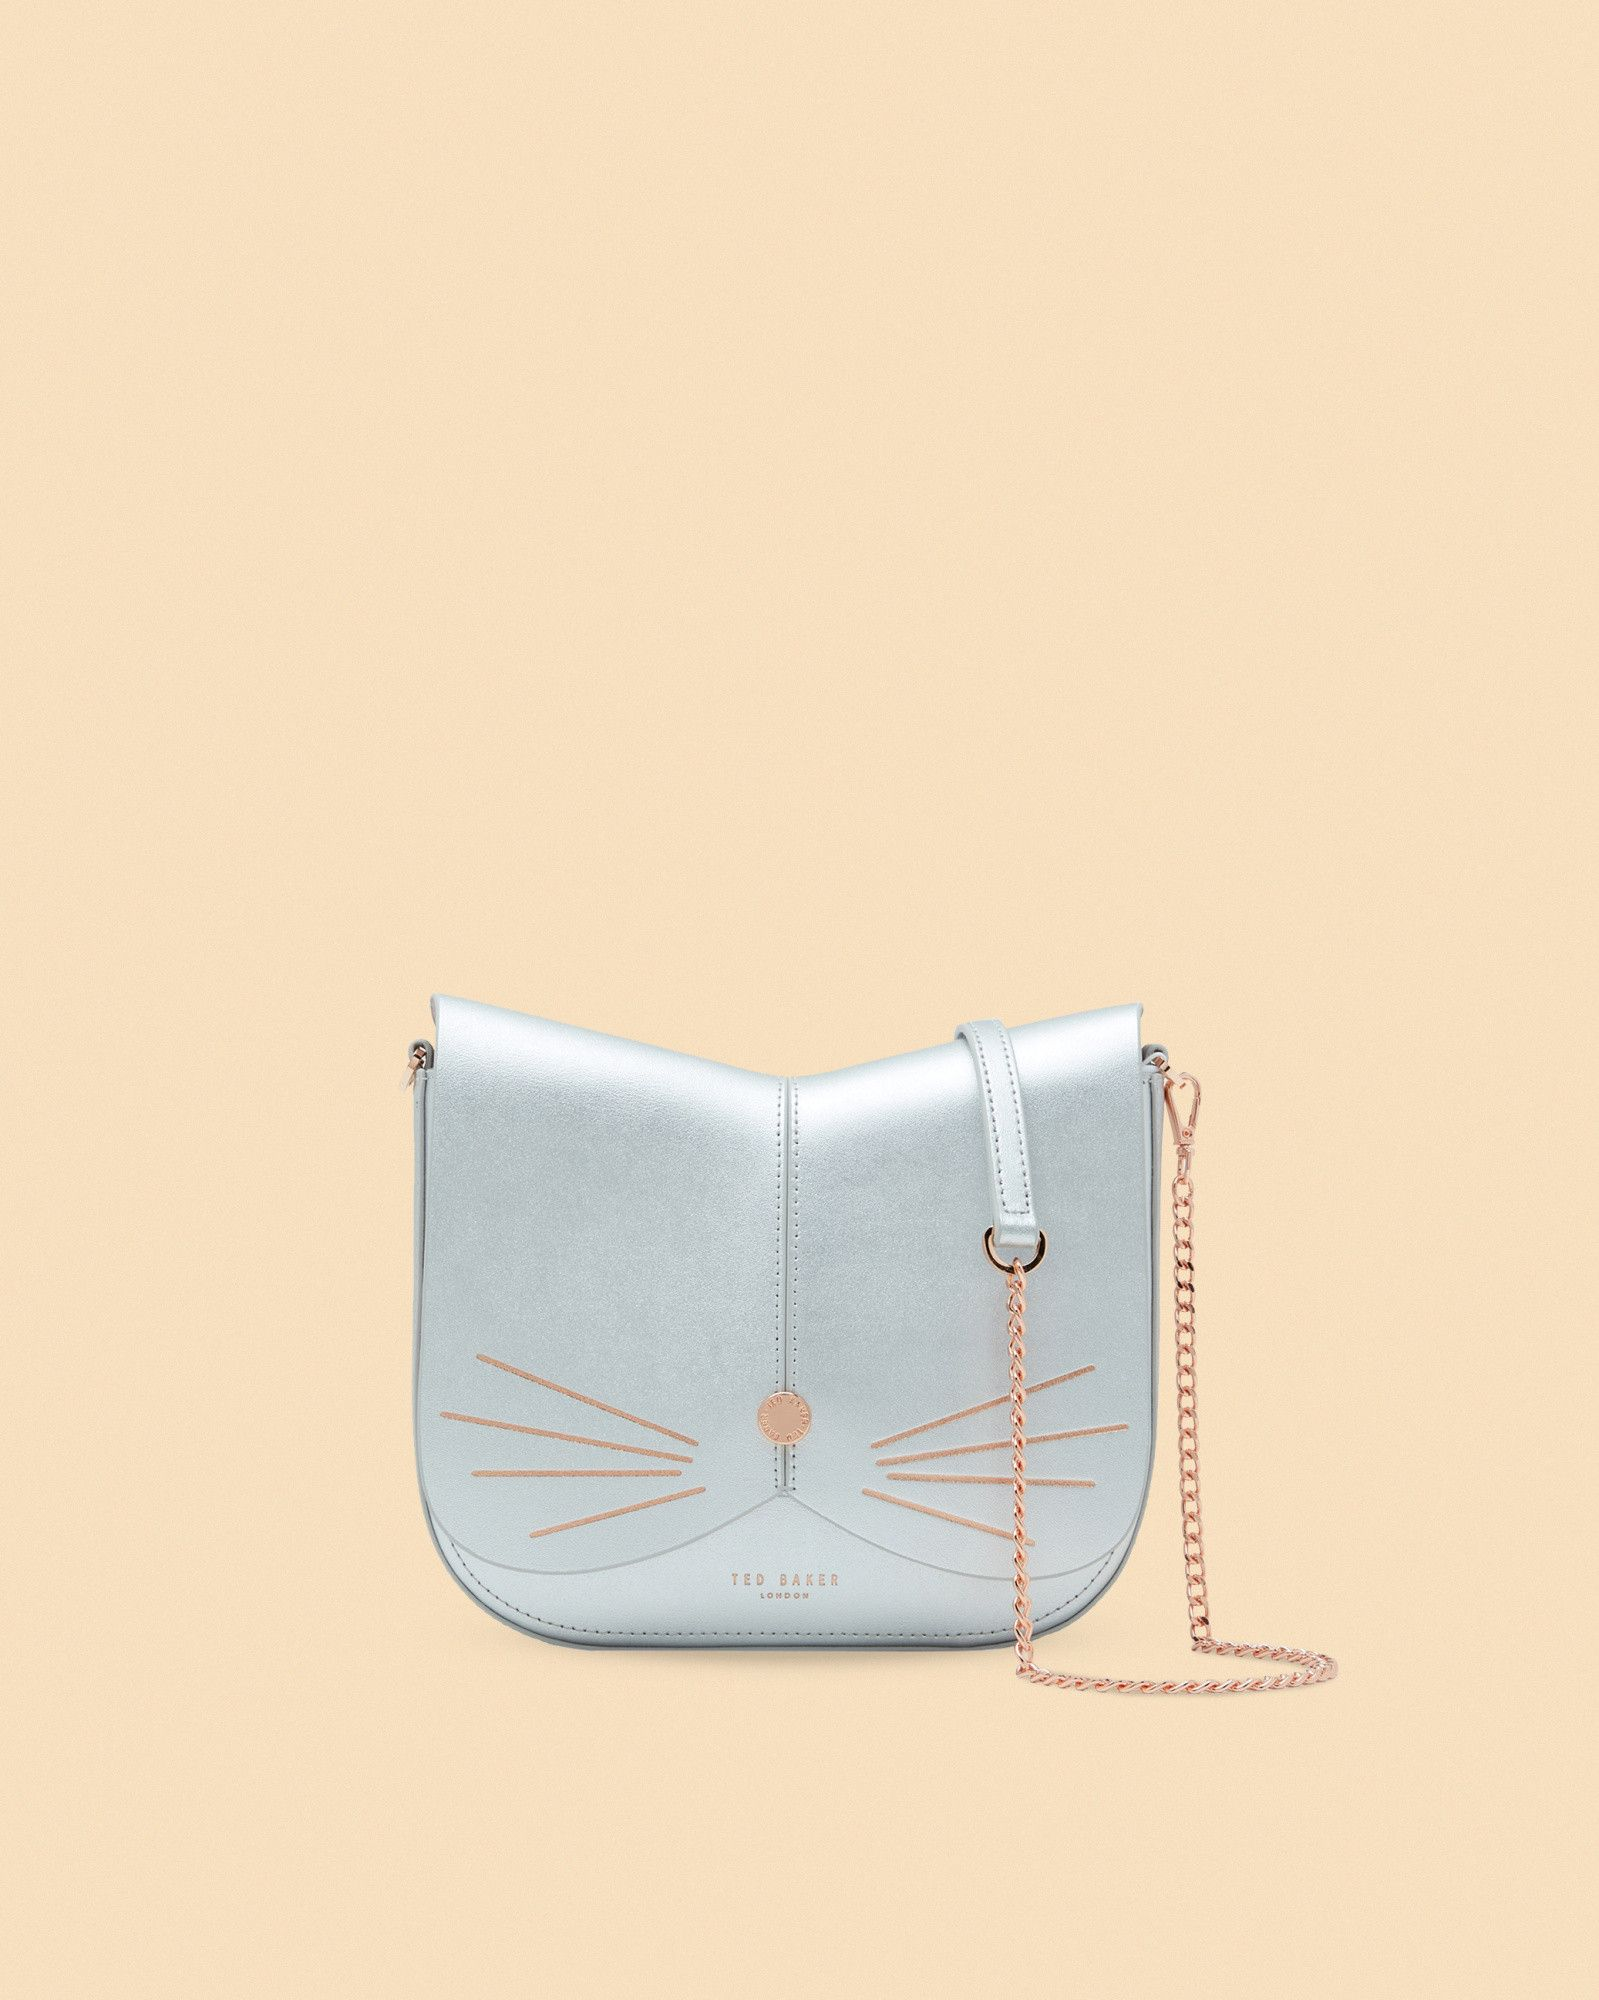 9d1cddd944a8be Ted Baker Cat leather cross body bag Silver